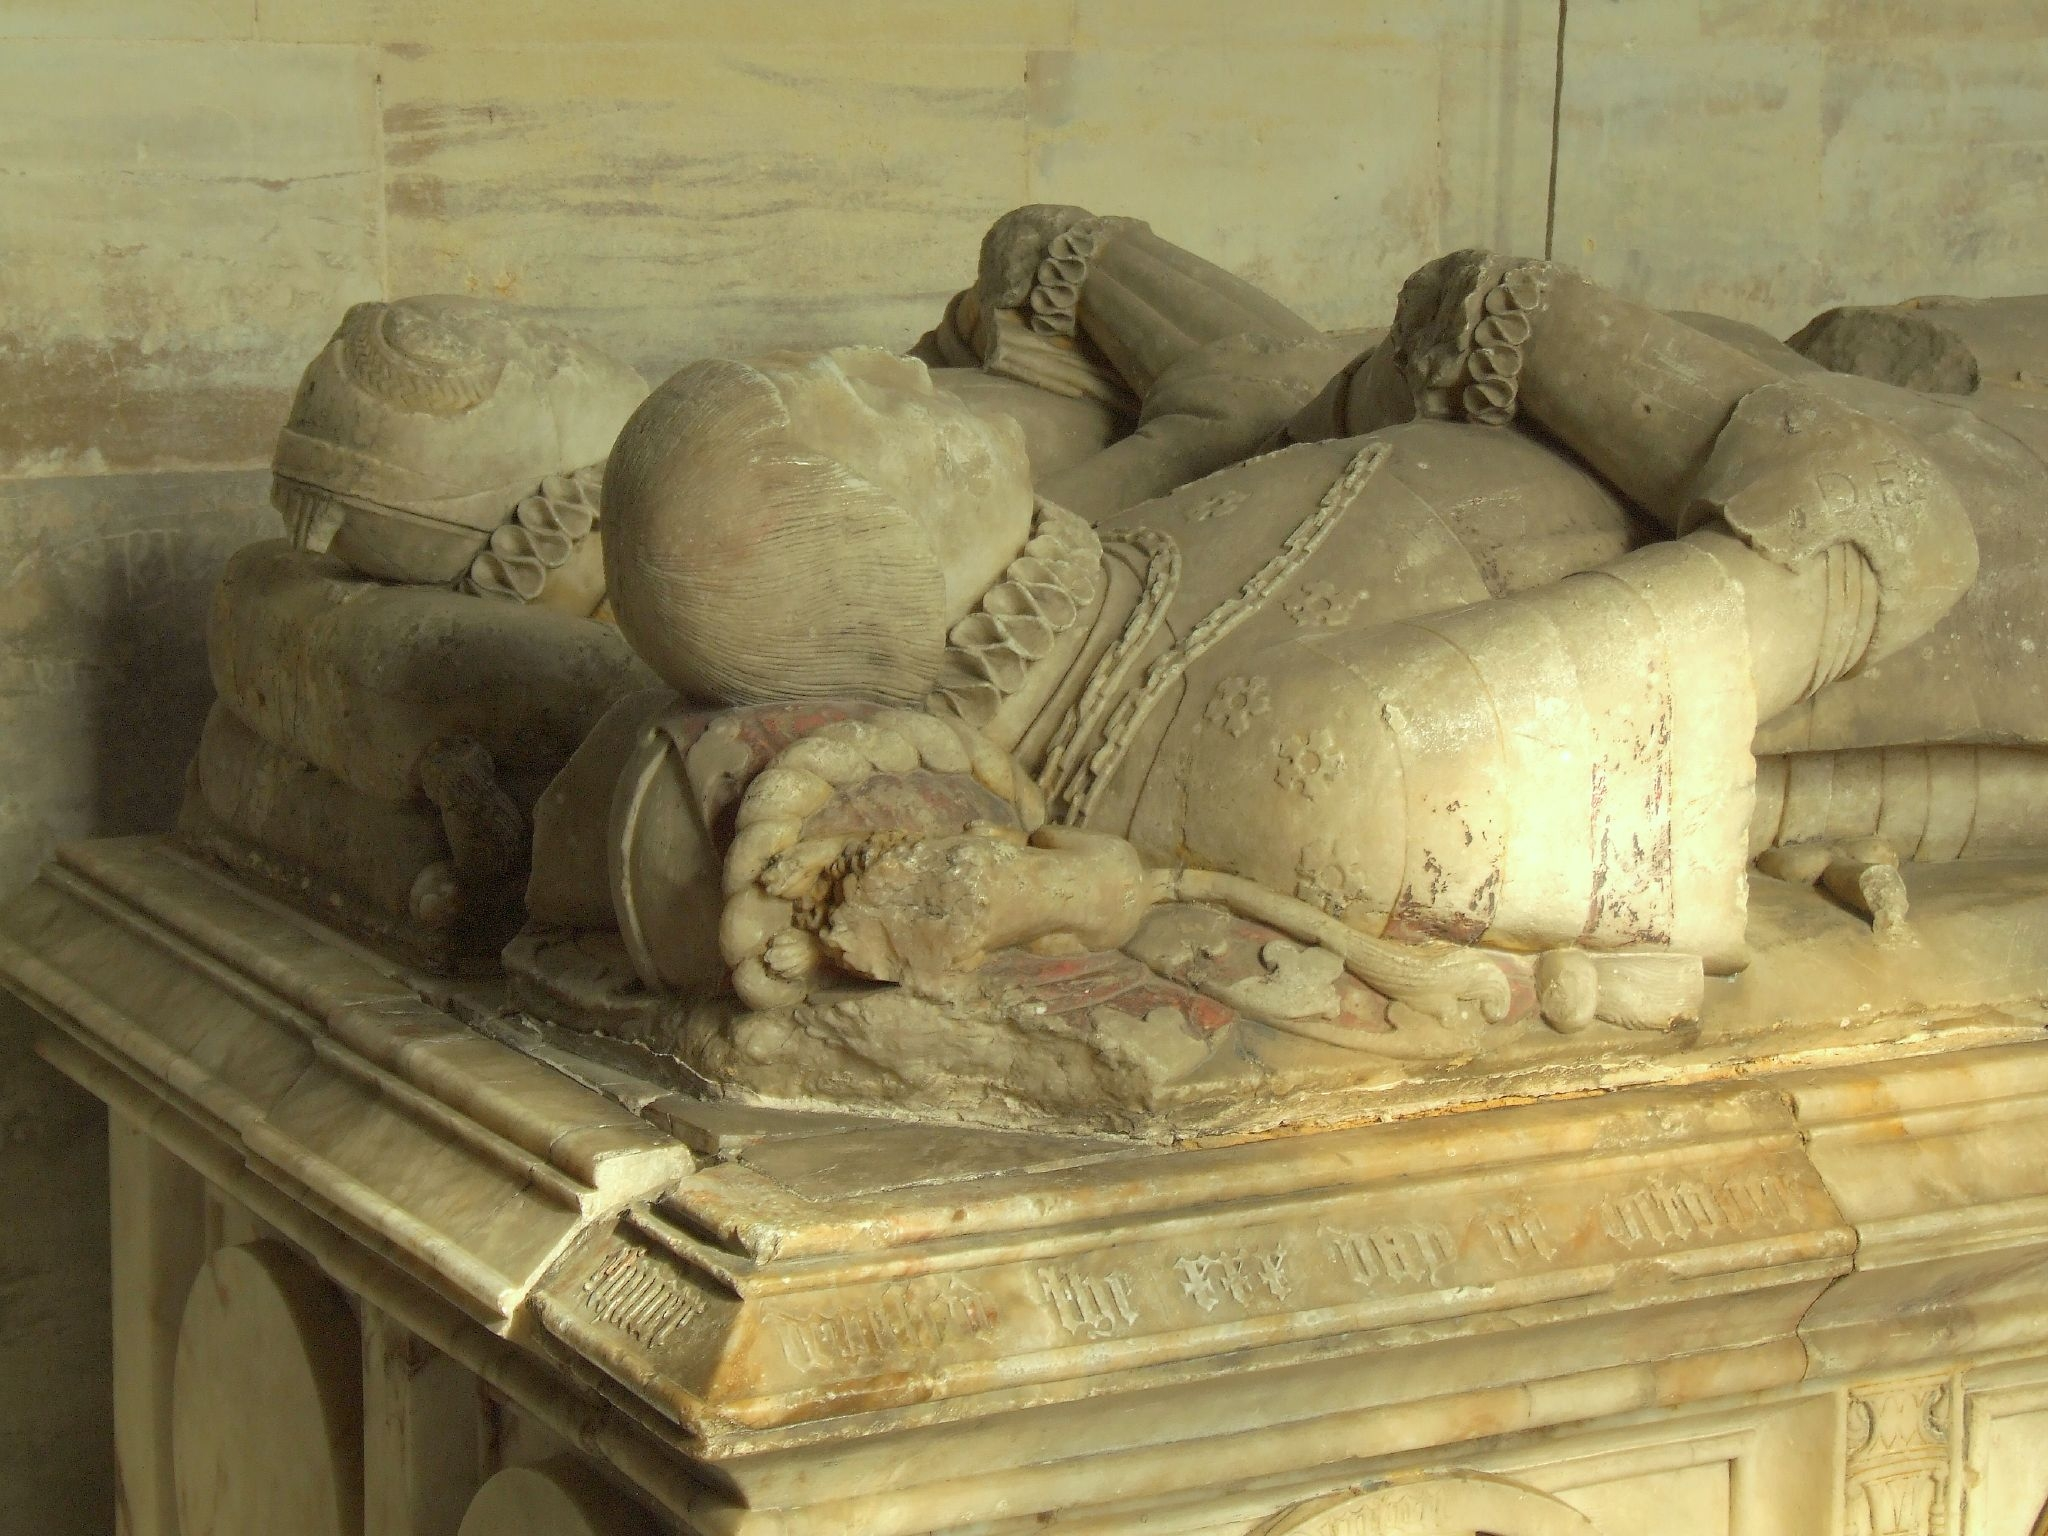 1558 - Monument of Thomas Denton (died 1558) and his wife